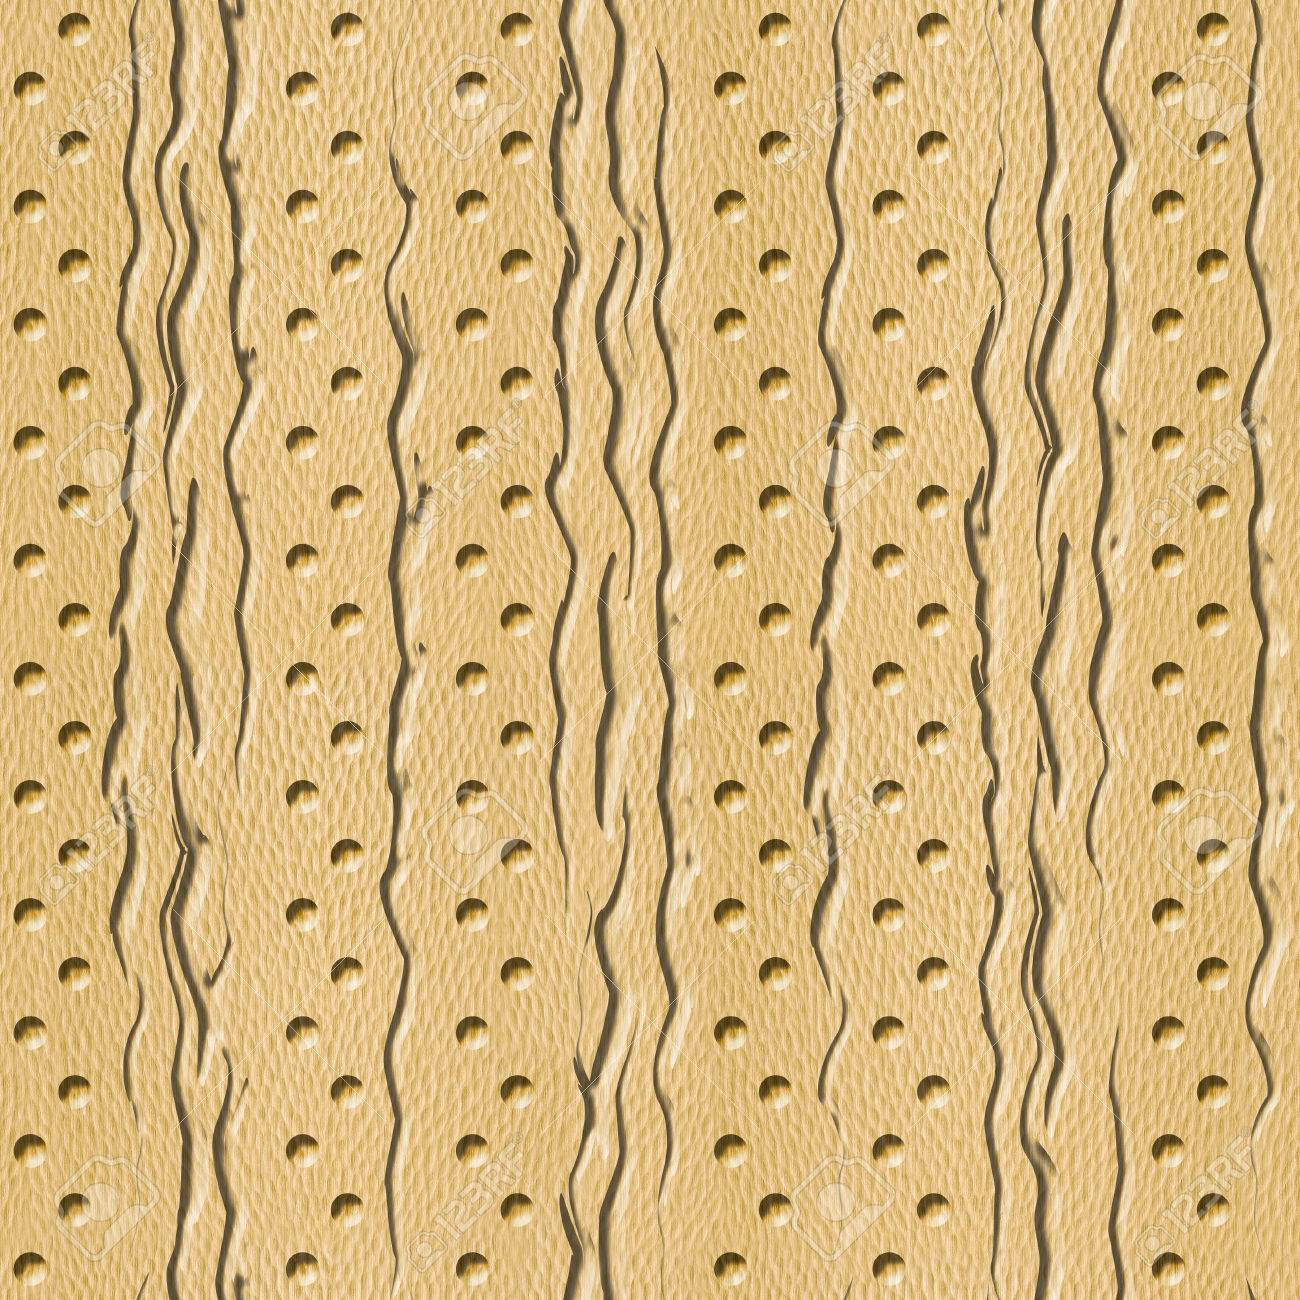 Abstract Decorative Texture - Interior Wall Panel Pattern - 3D ...